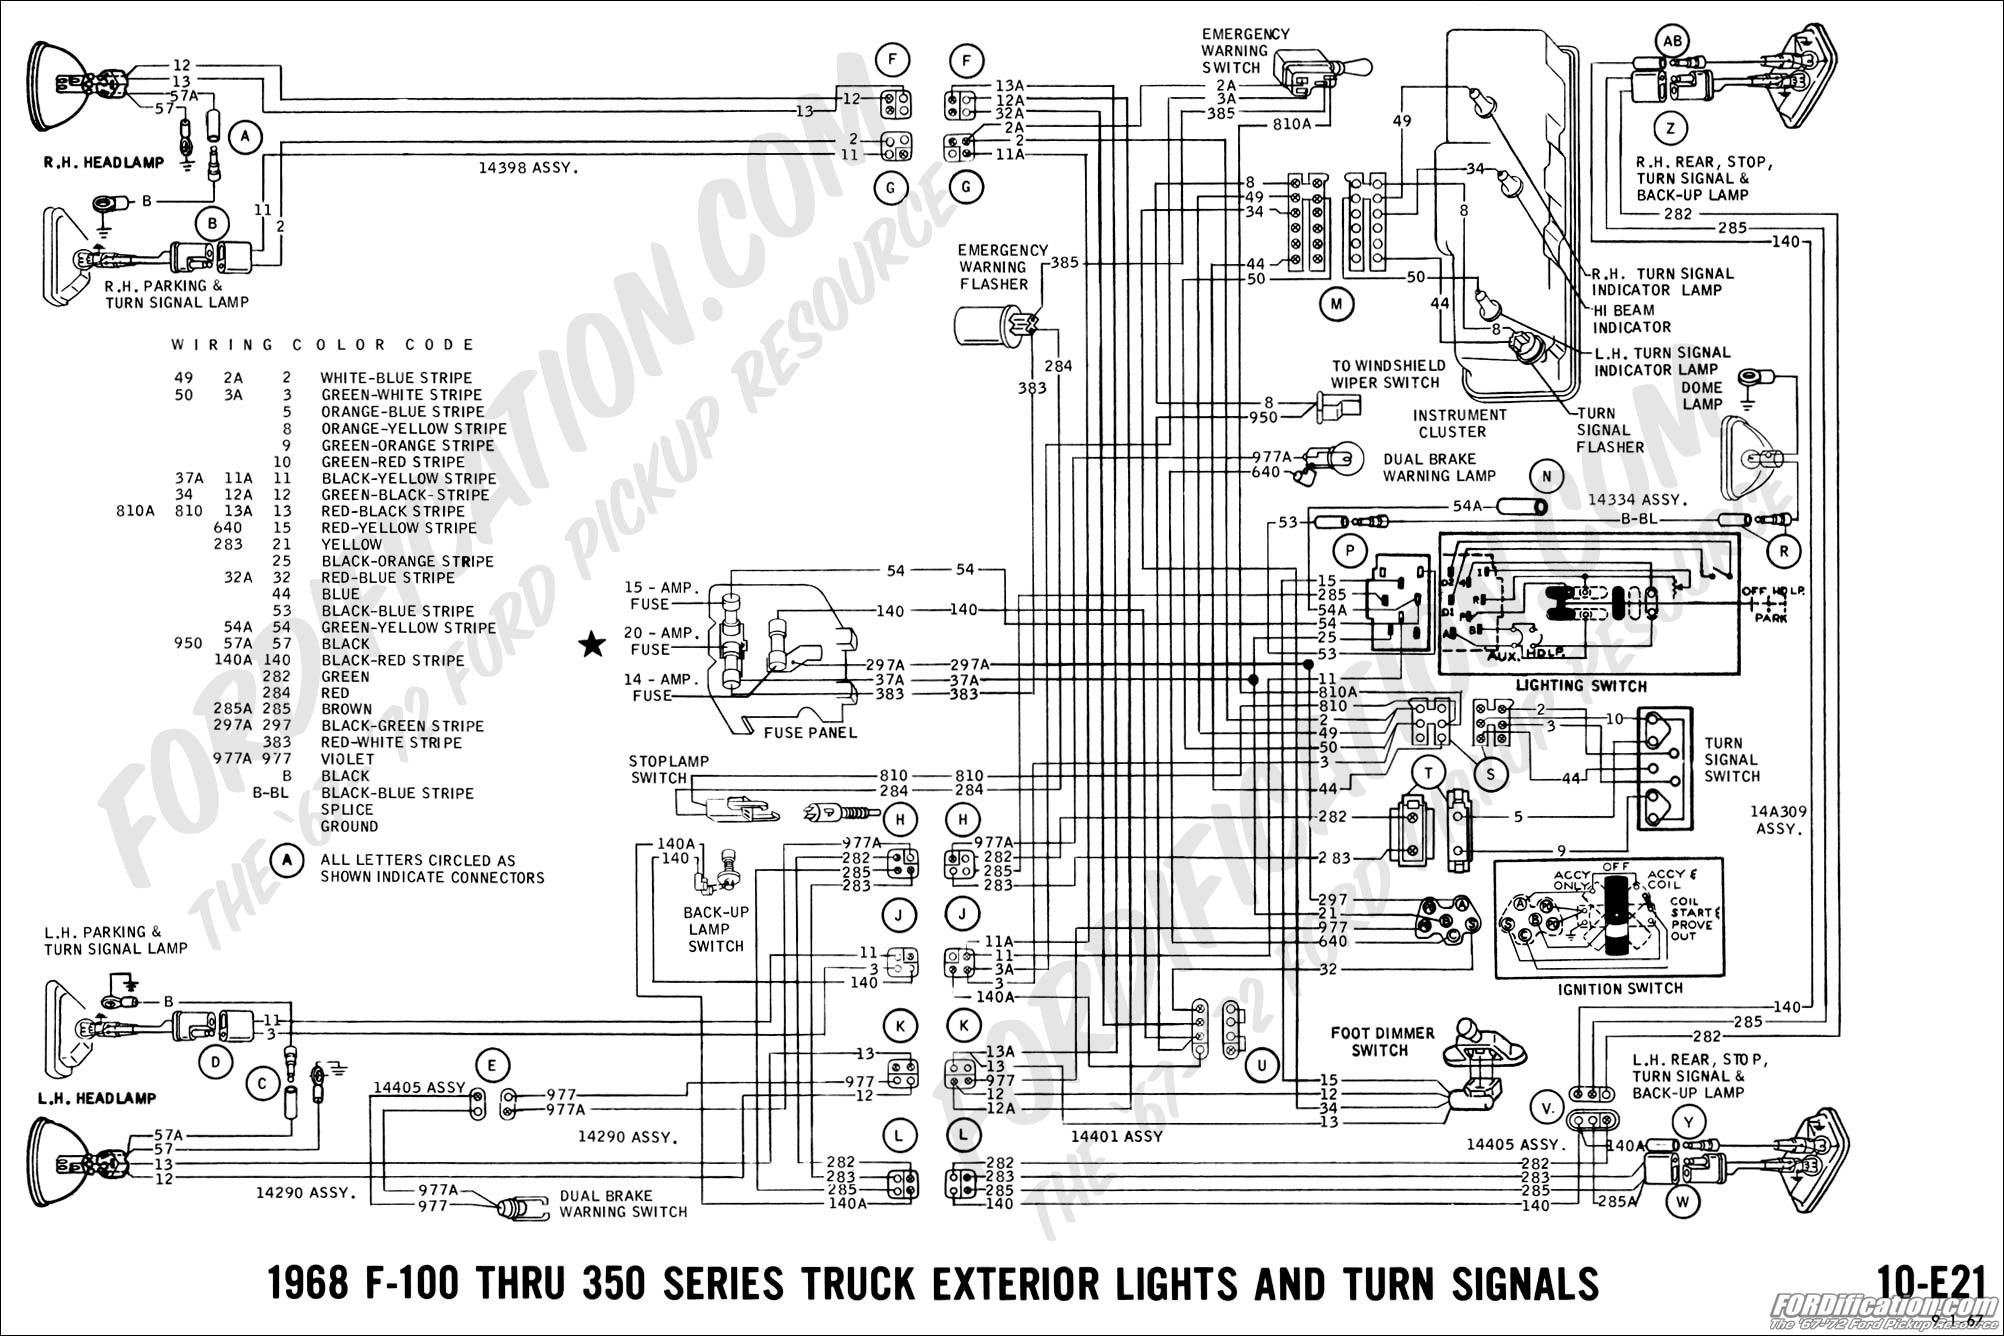 2000 ford F250 Rear Tail Light Wiring 688 ford F 350 Tail Light Wiring Diagram Of 2000 ford F250 Rear Tail Light Wiring